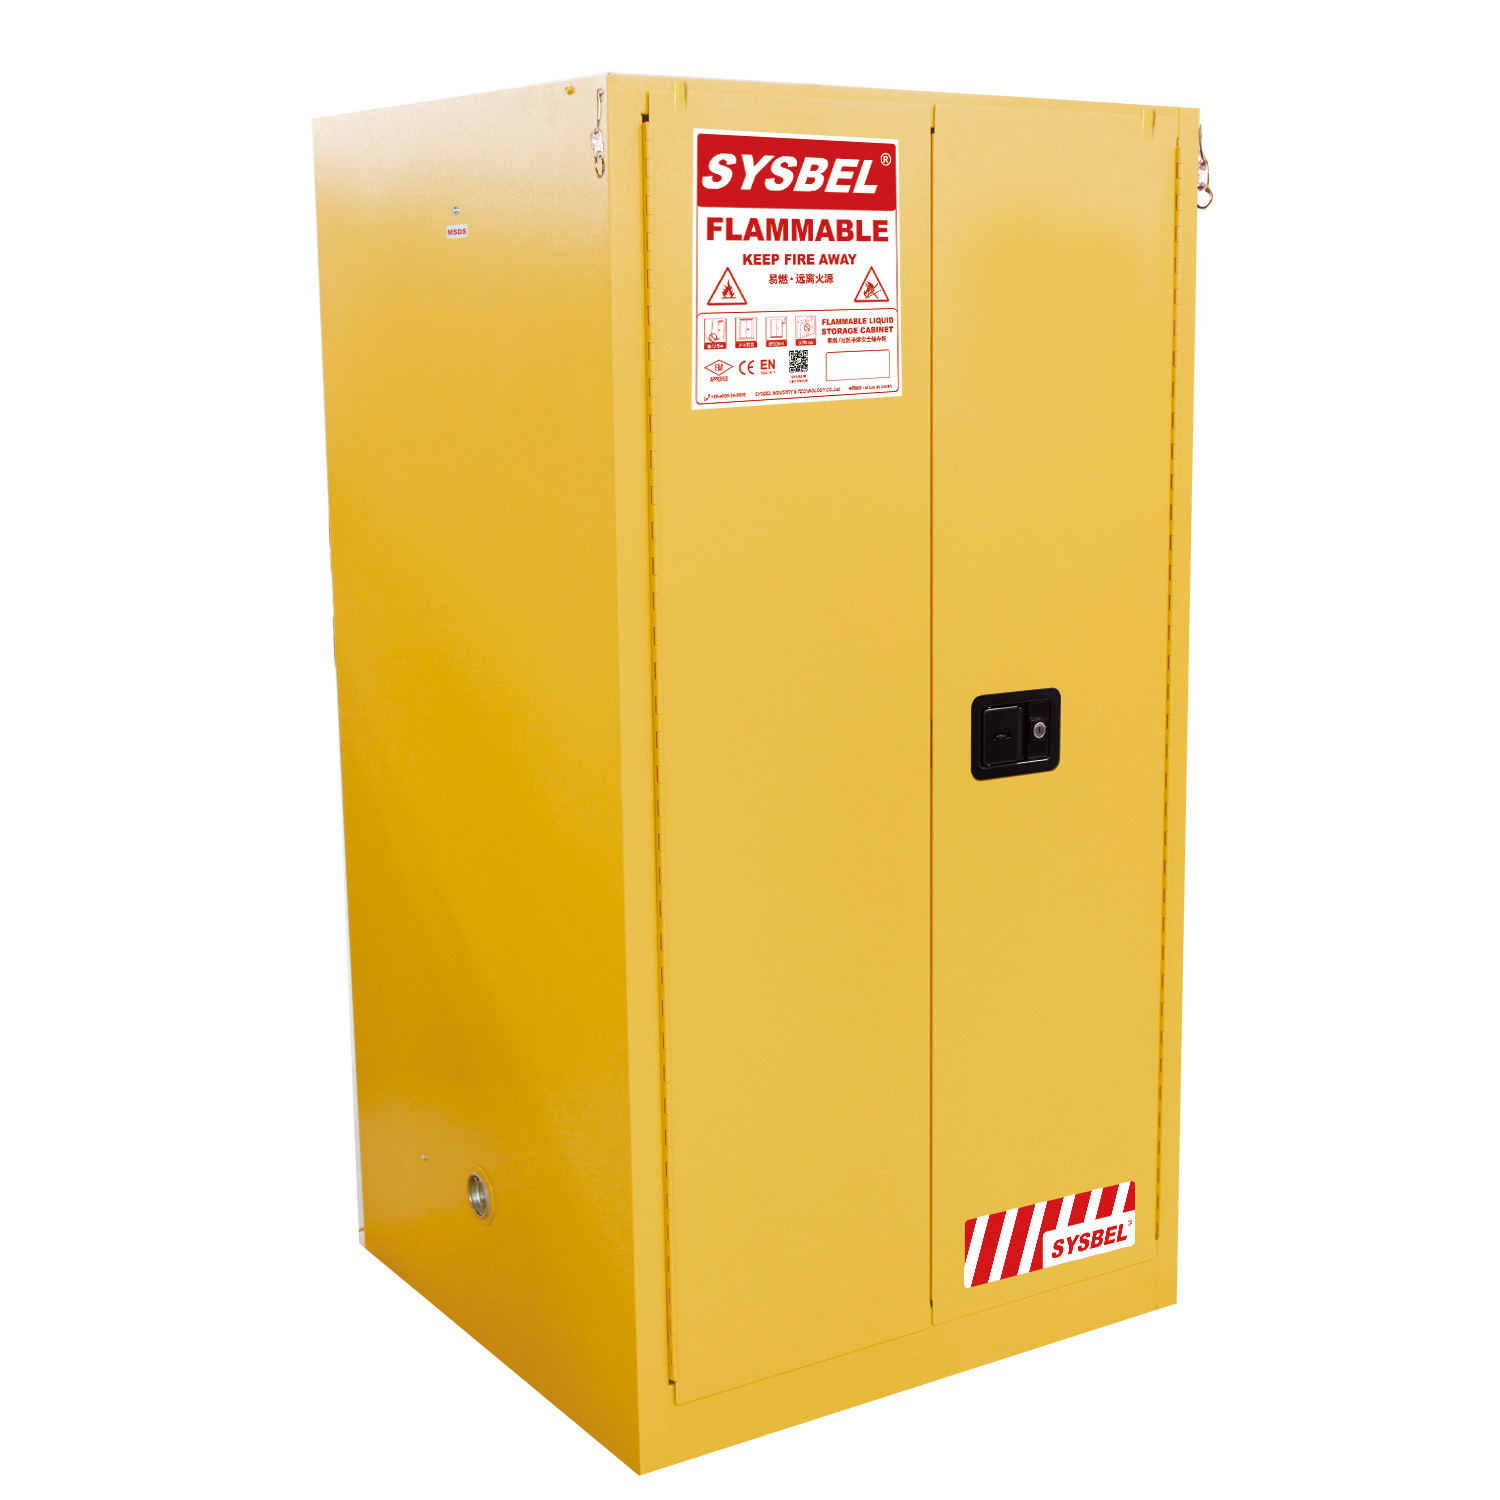 Wonderful SD60227F U2013 227L SYSBEL Flammable Cabinet (Self Closing)